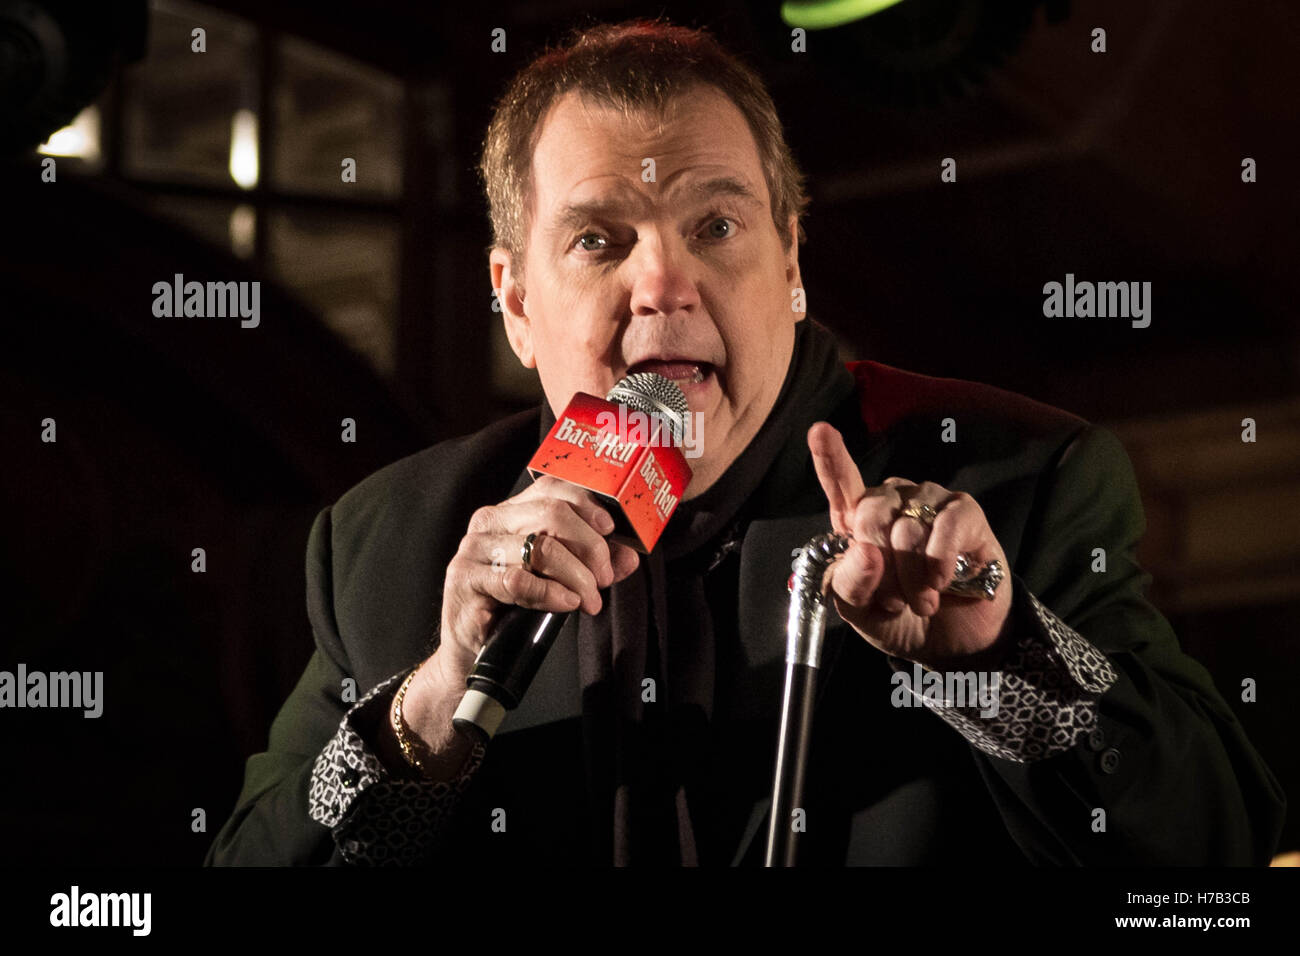 London, UK. 3rd November, 2016. Meat Loaf makes an appearance to promote the launch of Jim Steinman's Bat Out Of - Stock Image